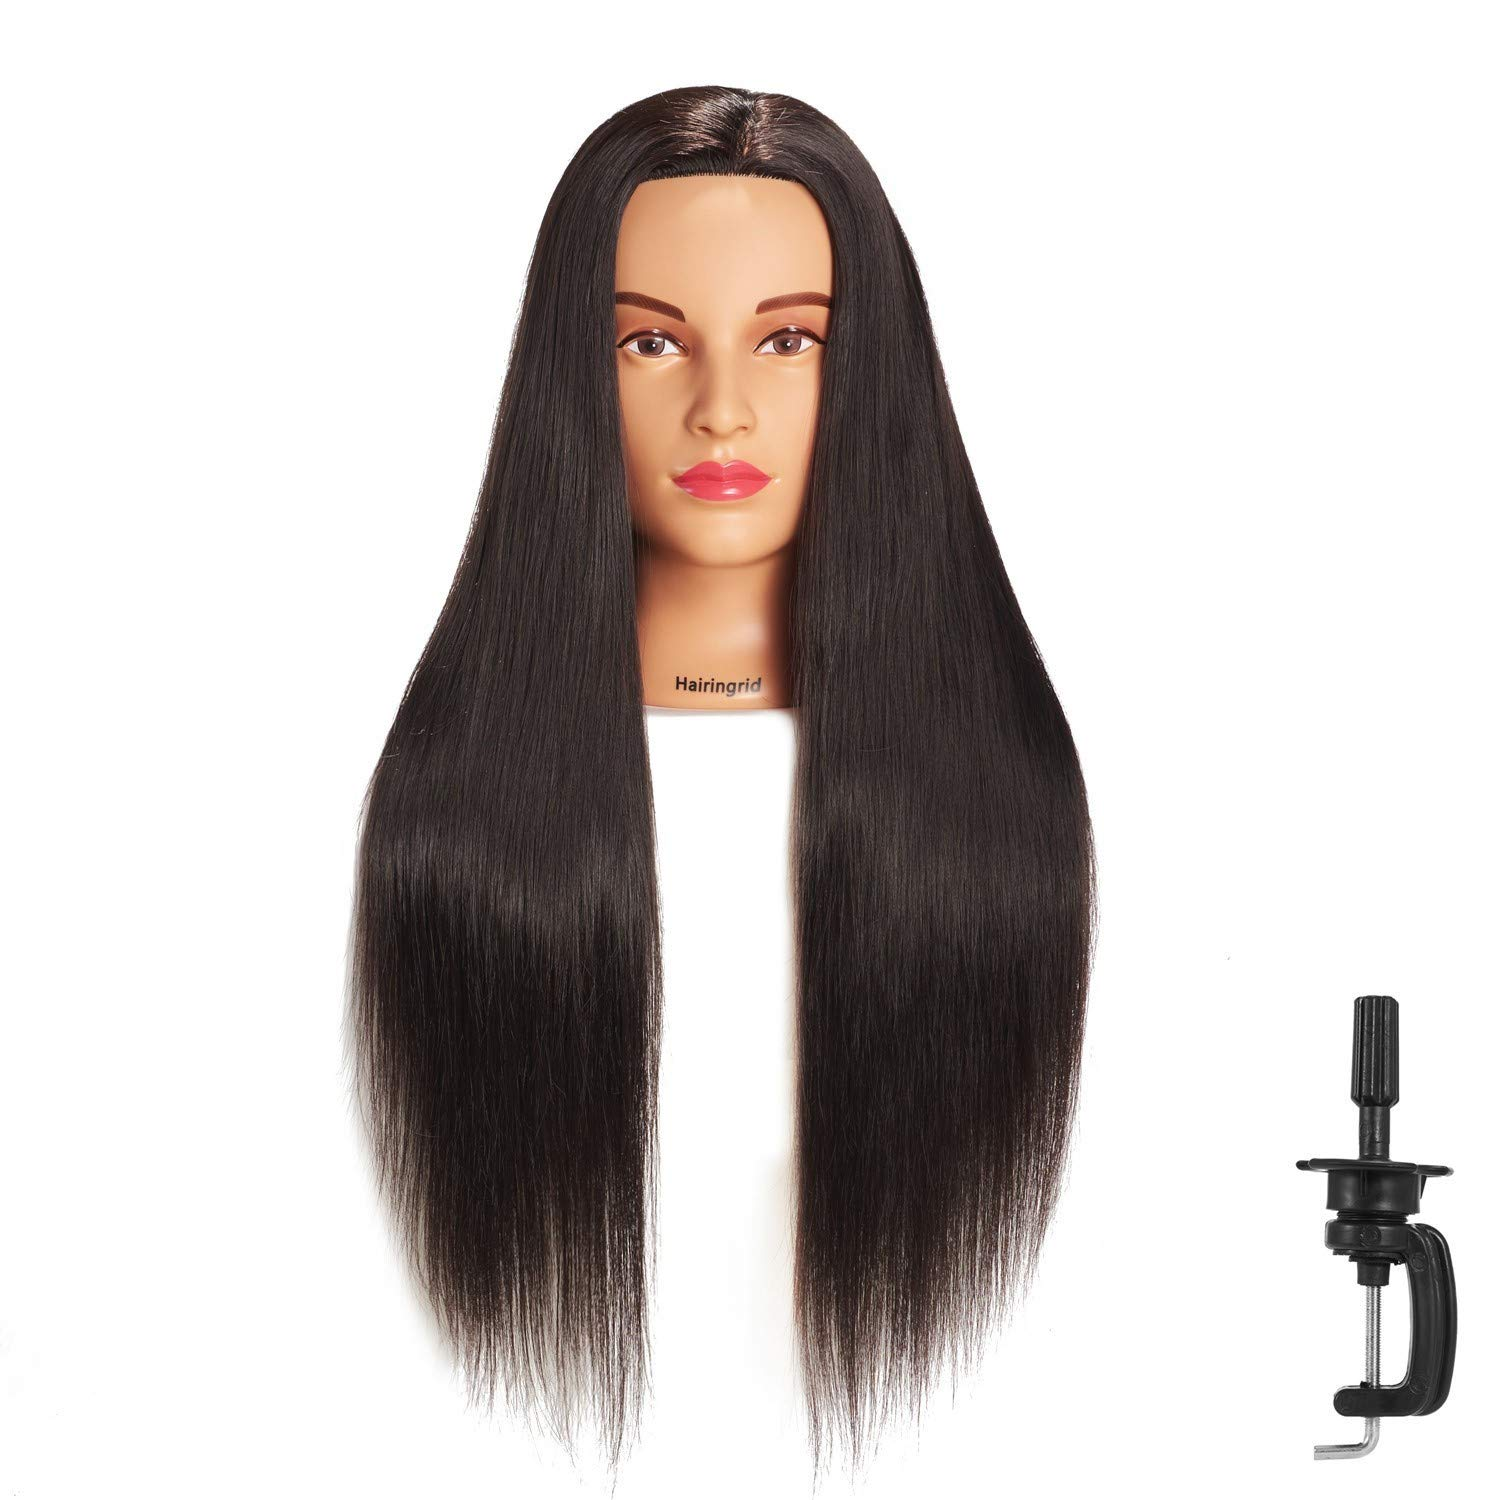 Hairingrid 26''-28'' Mannequin Head Hair Styling Training Head Manikin Cosmetology Doll Head Synthetic Fiber Hair and Free Clamp Holder (Black) by Hairingrid